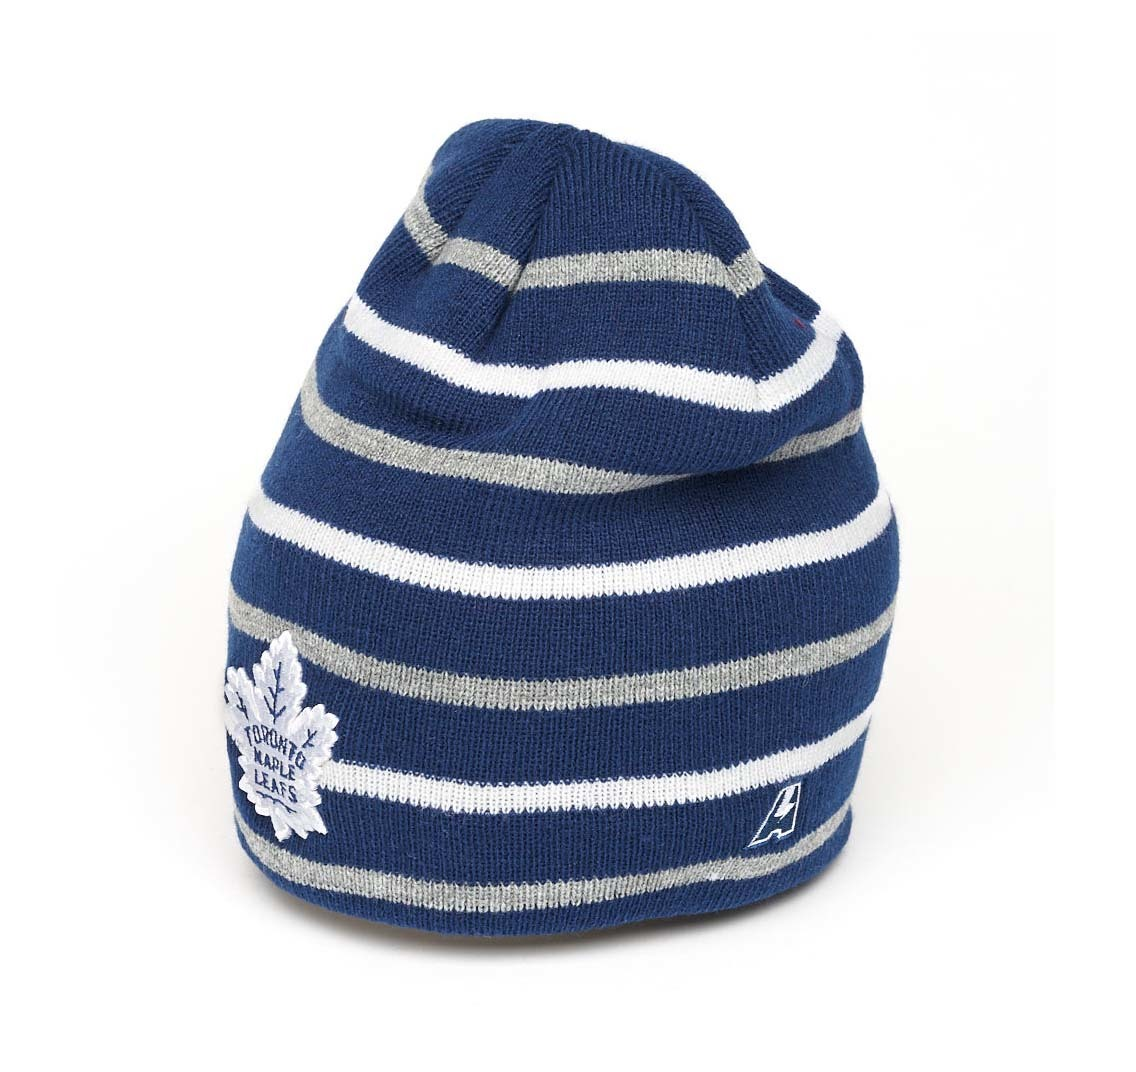 Шапка NHL Toronto Maple Leafs (подростковая)